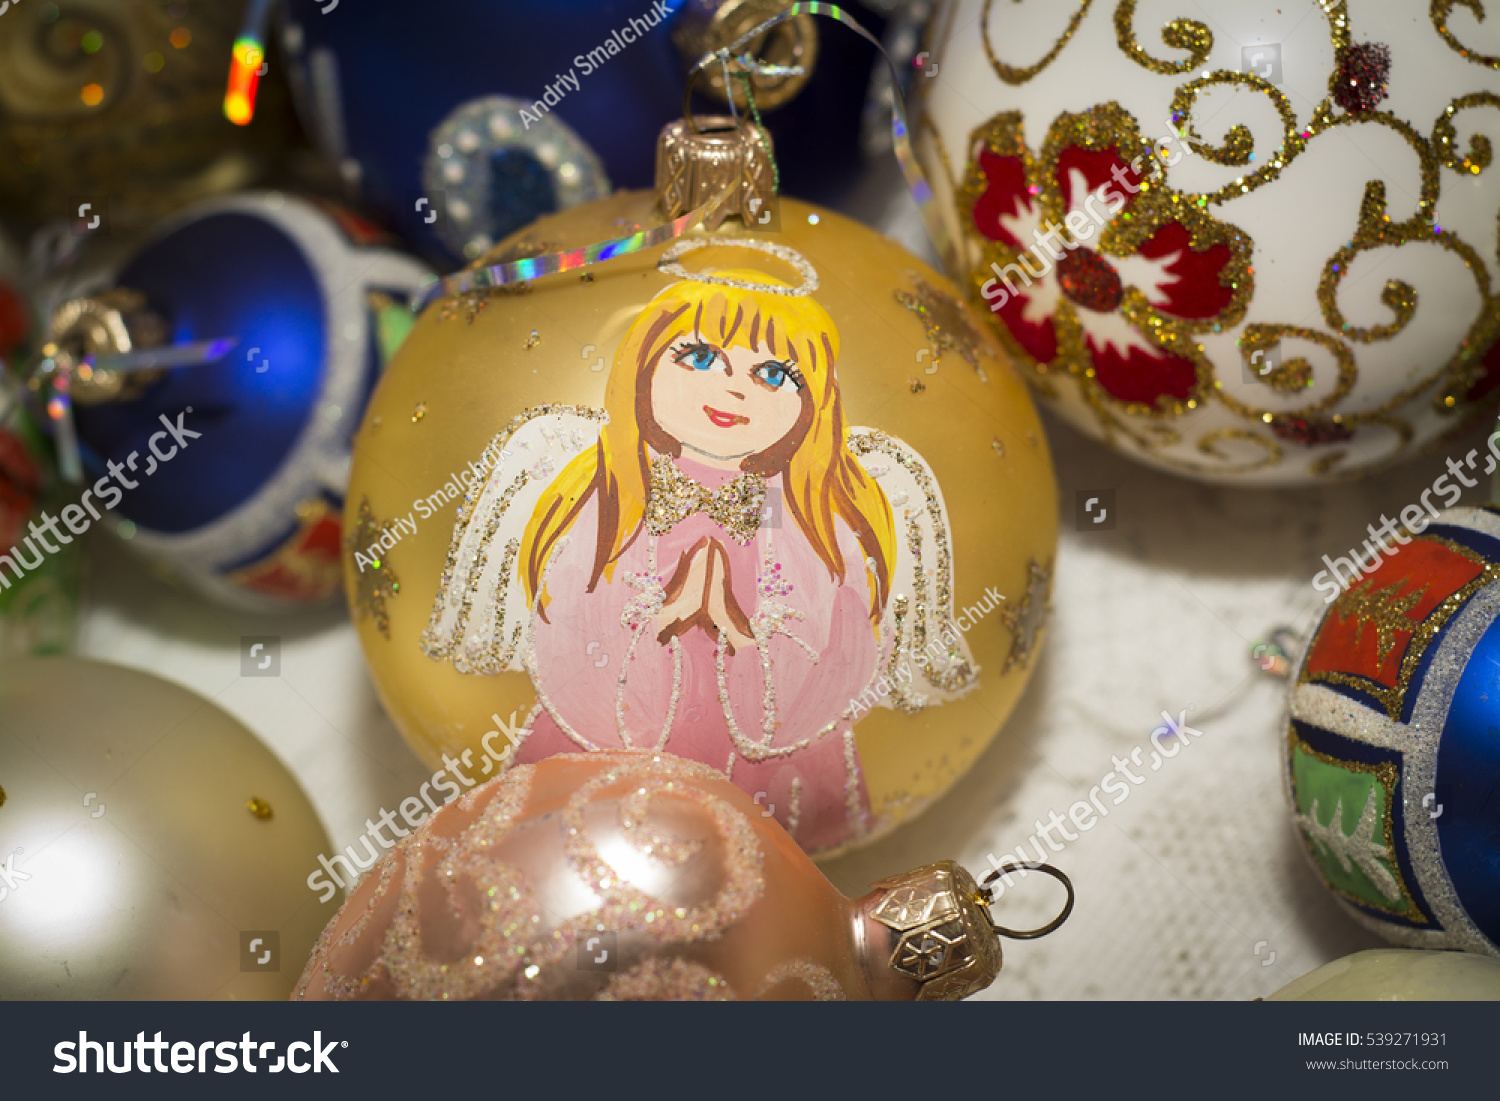 Beautiful glass ornaments - Beautiful Glass Ornaments For The Christmas Tree Painted Handmade Marry Christmas And Happy